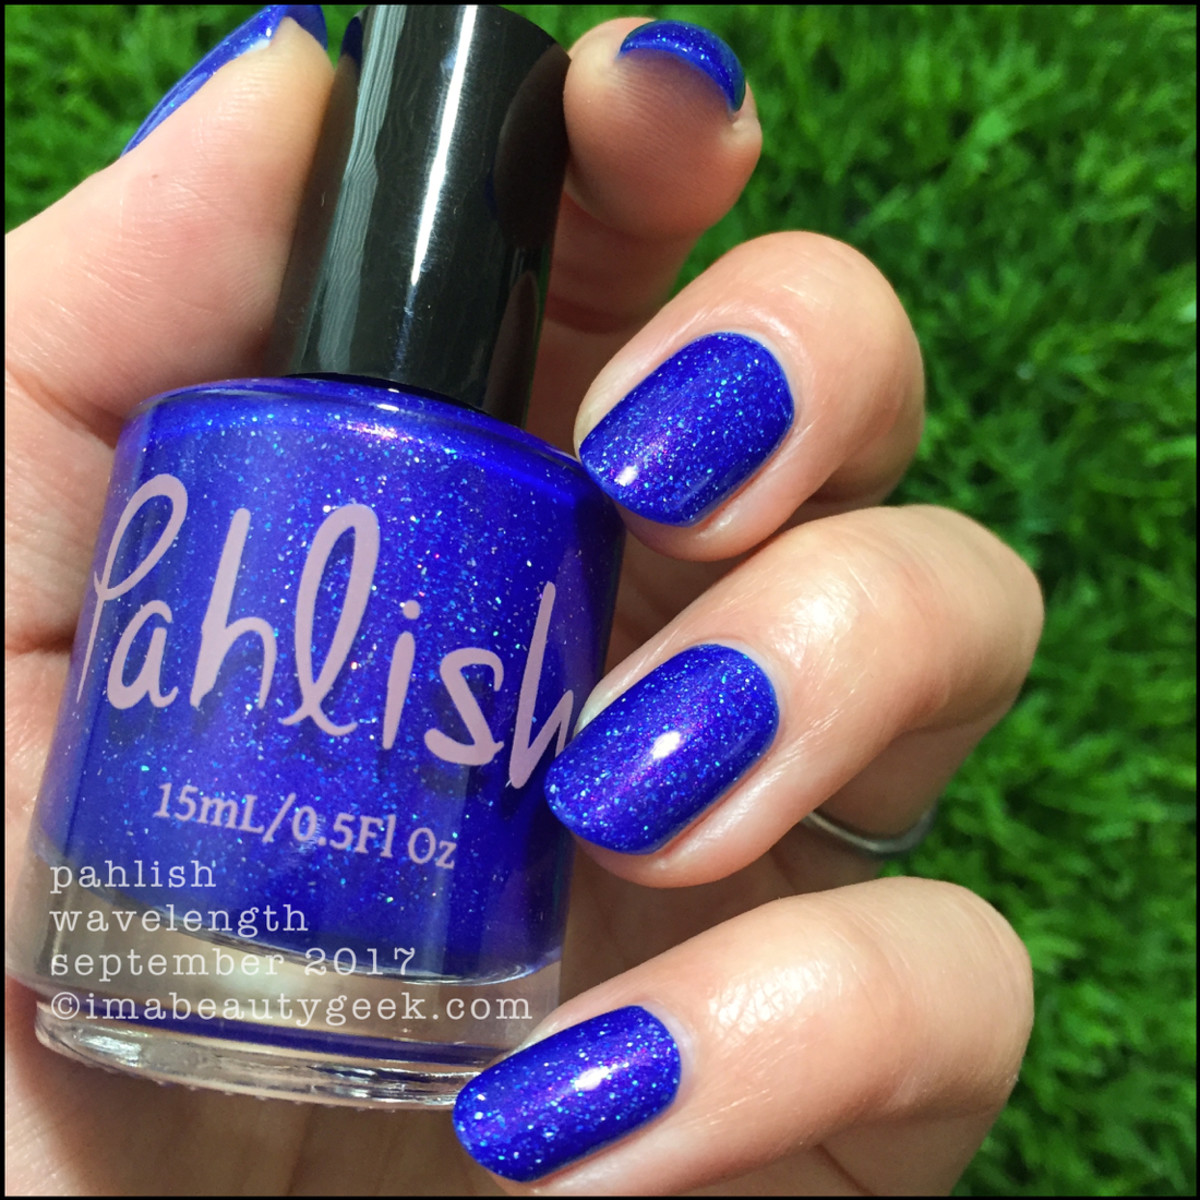 Pahlish Wavelength Swatches 2 _ Pahlish September 2017 Release Swatches Manigeek